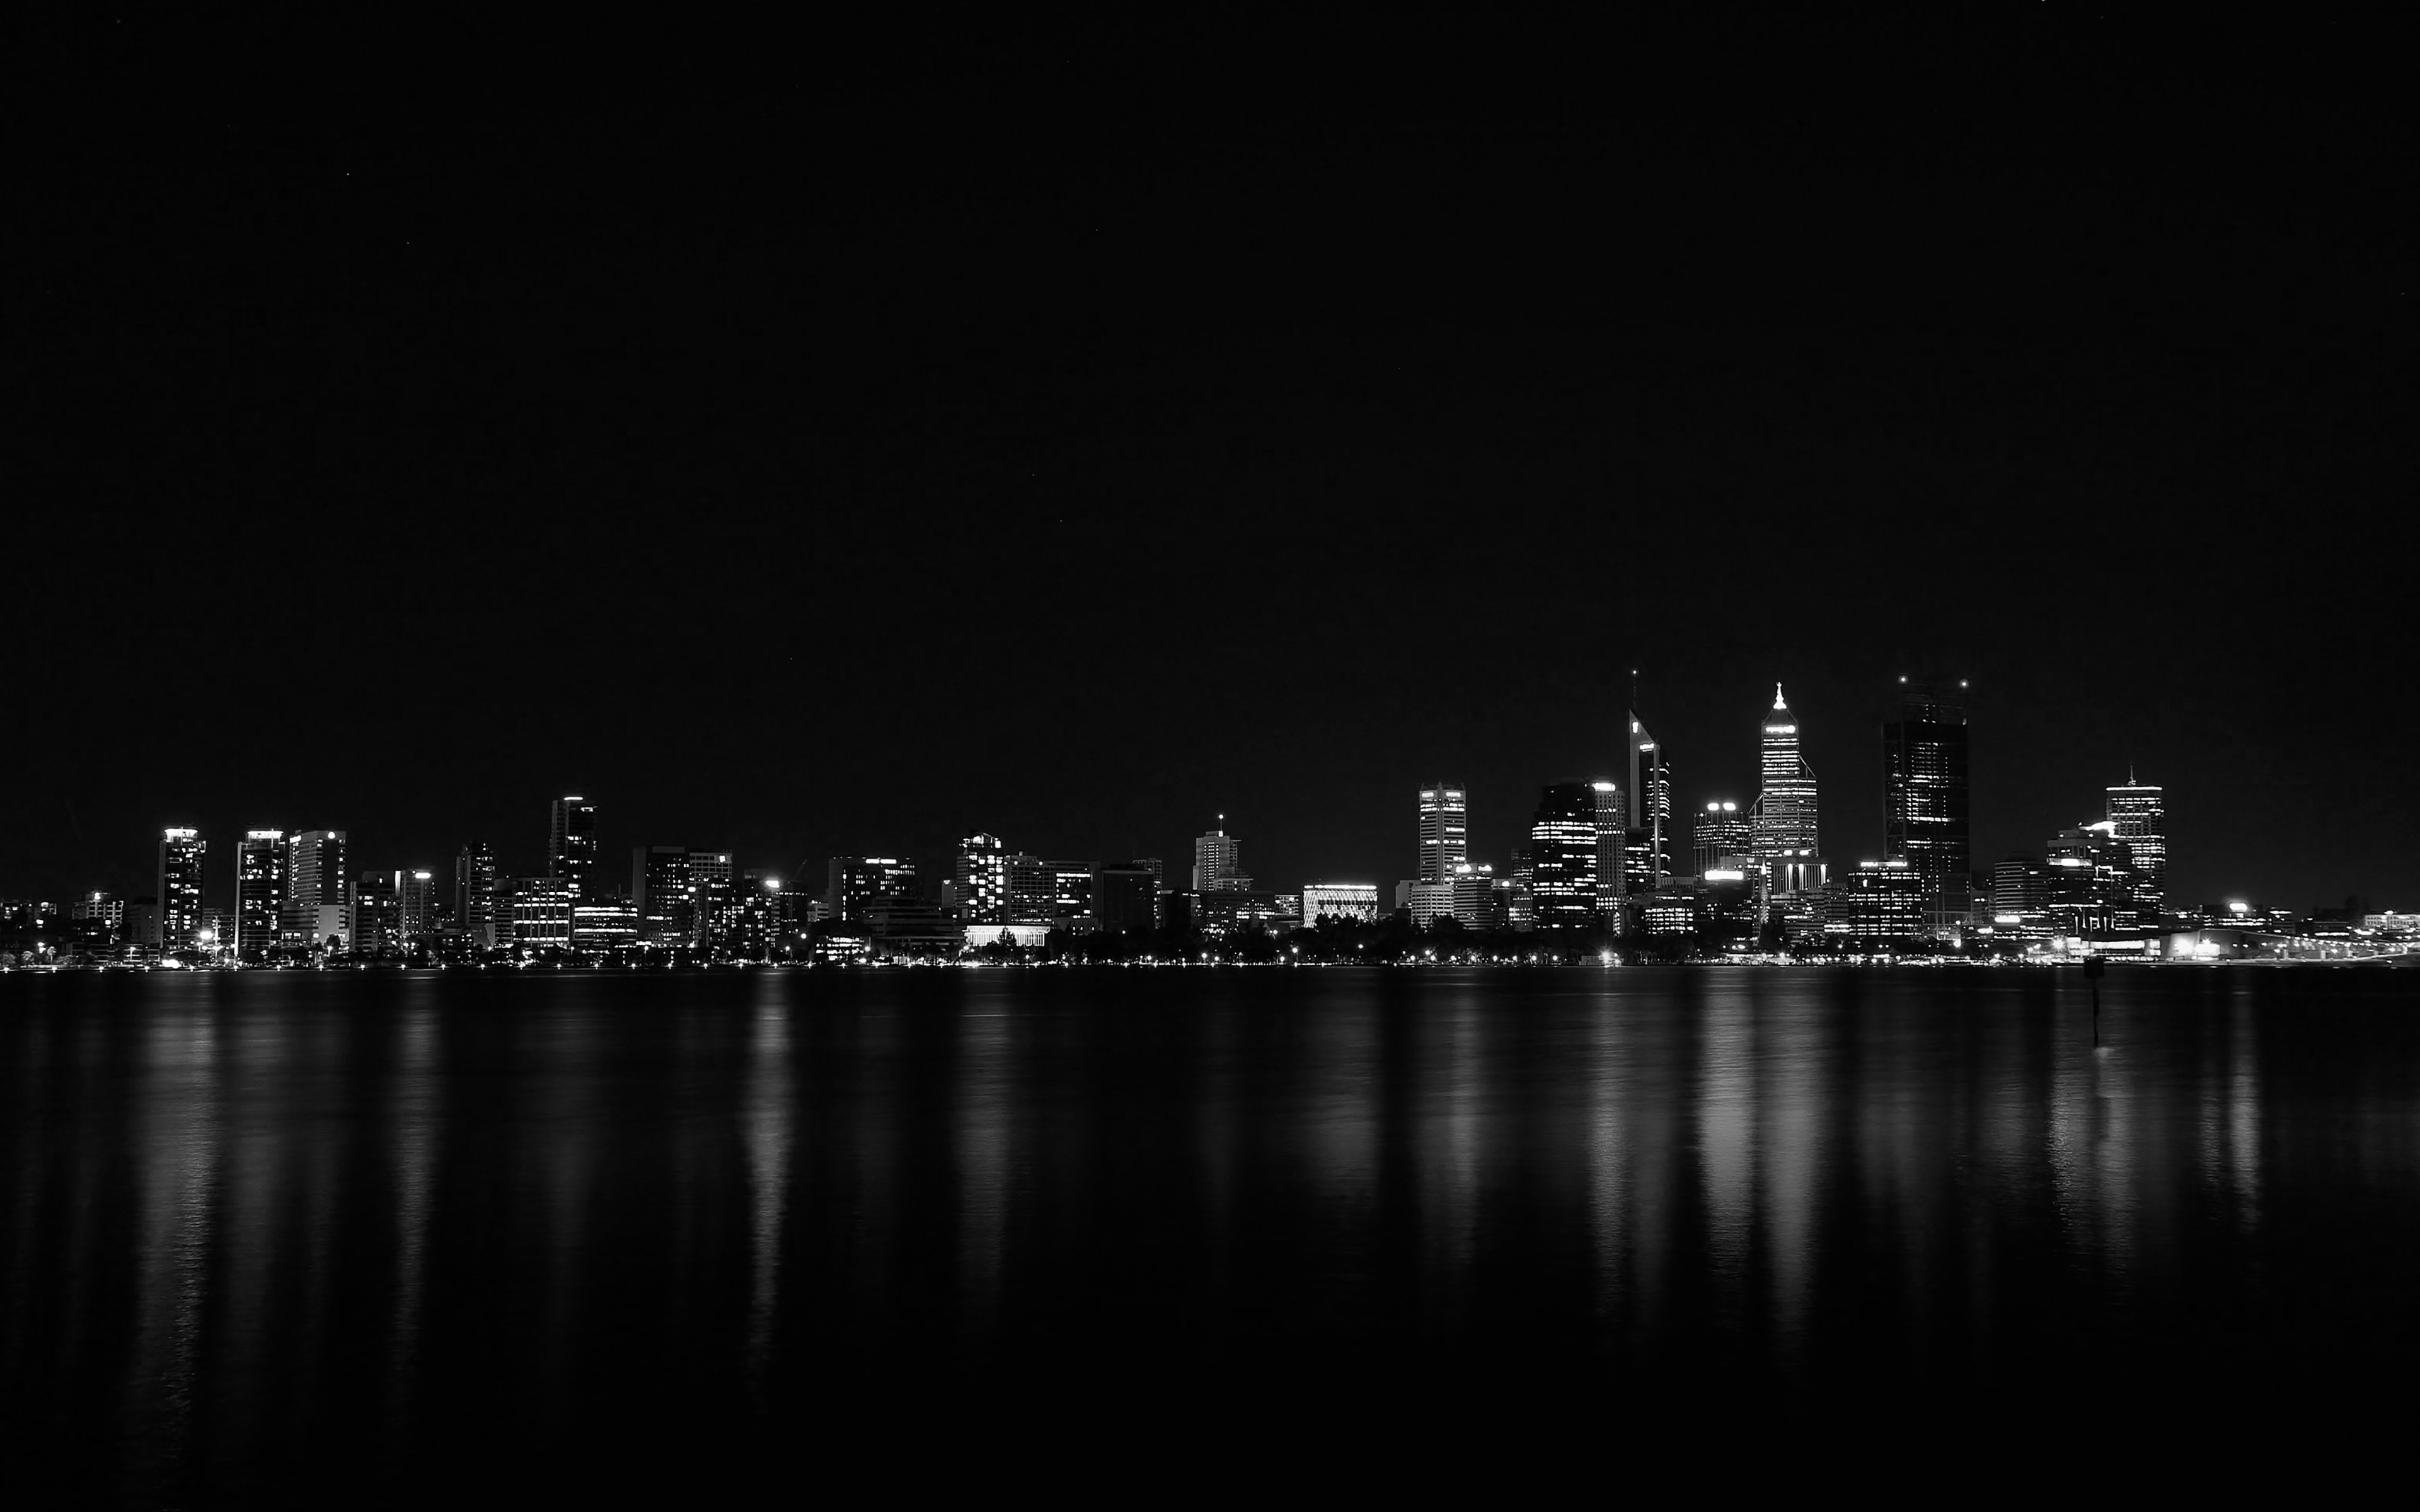 Black Car Lights Wallpaper Mk52 City Night Dark Skyline Architecture River Wallpaper